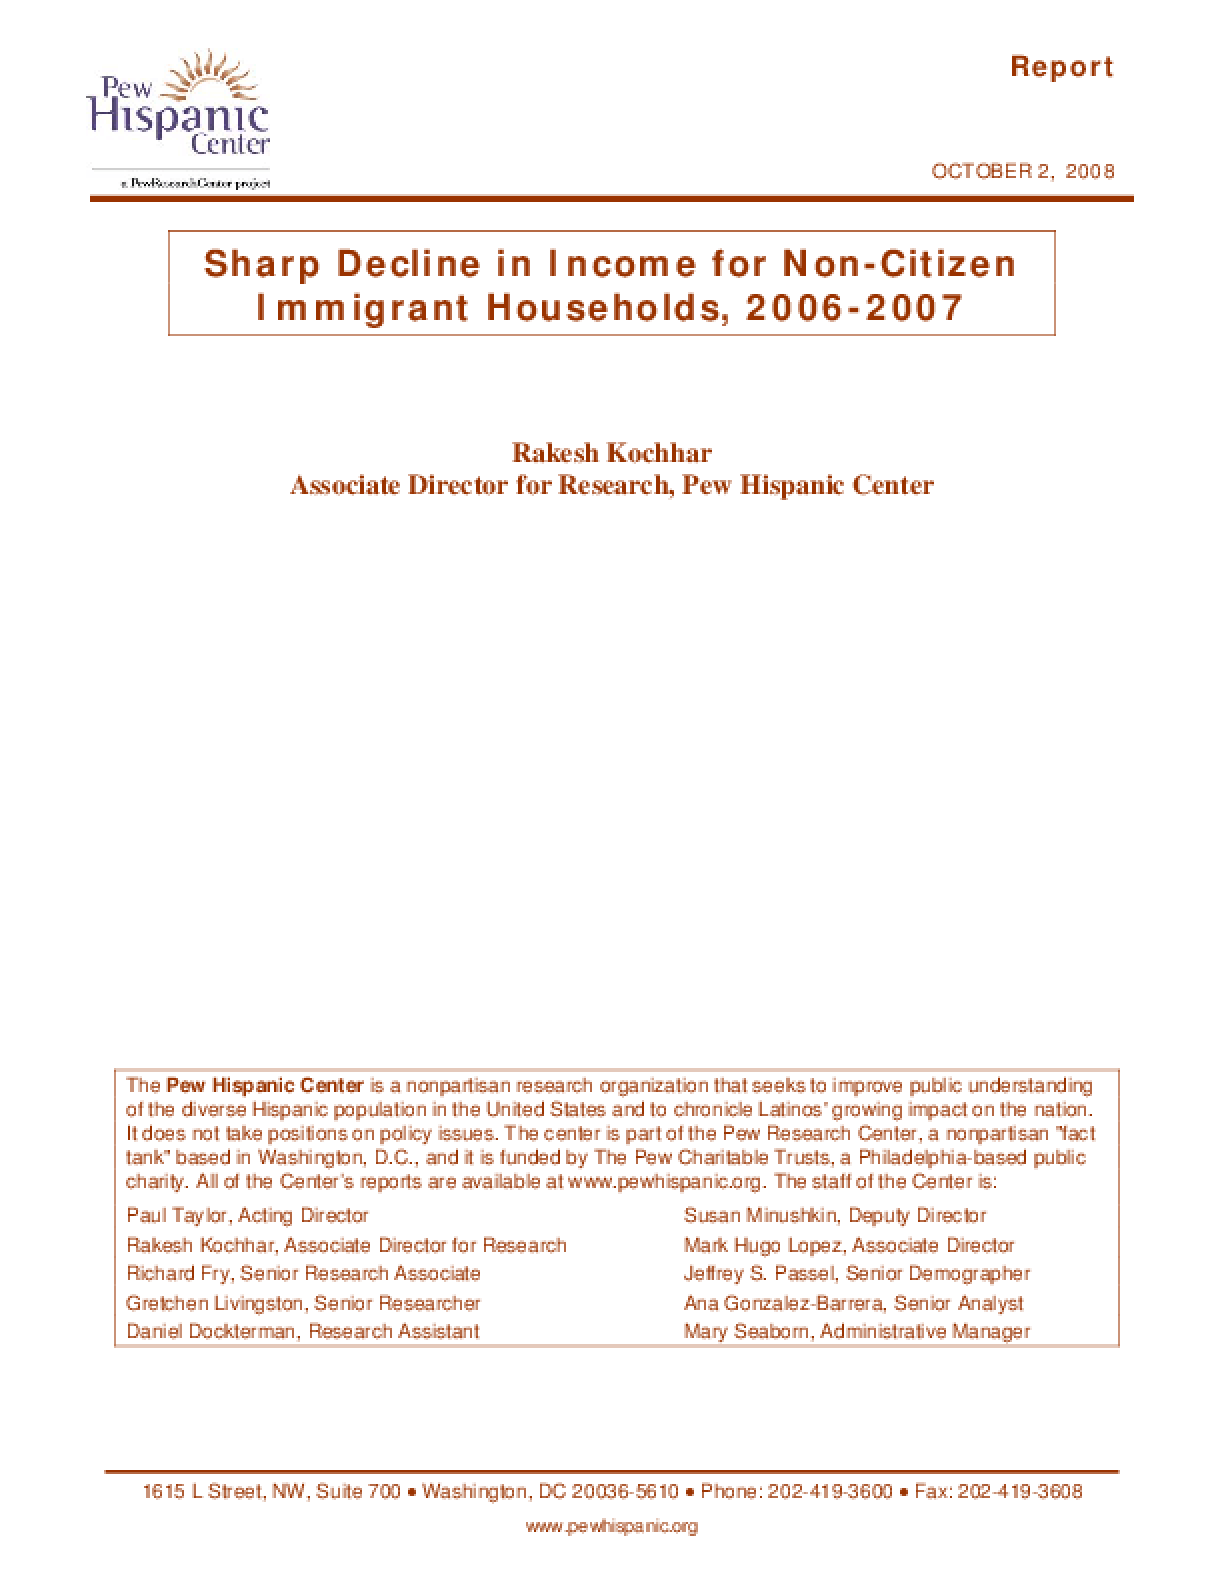 Sharp Decline in Income for Non-Citizen Immigrant Households, 2006-2007